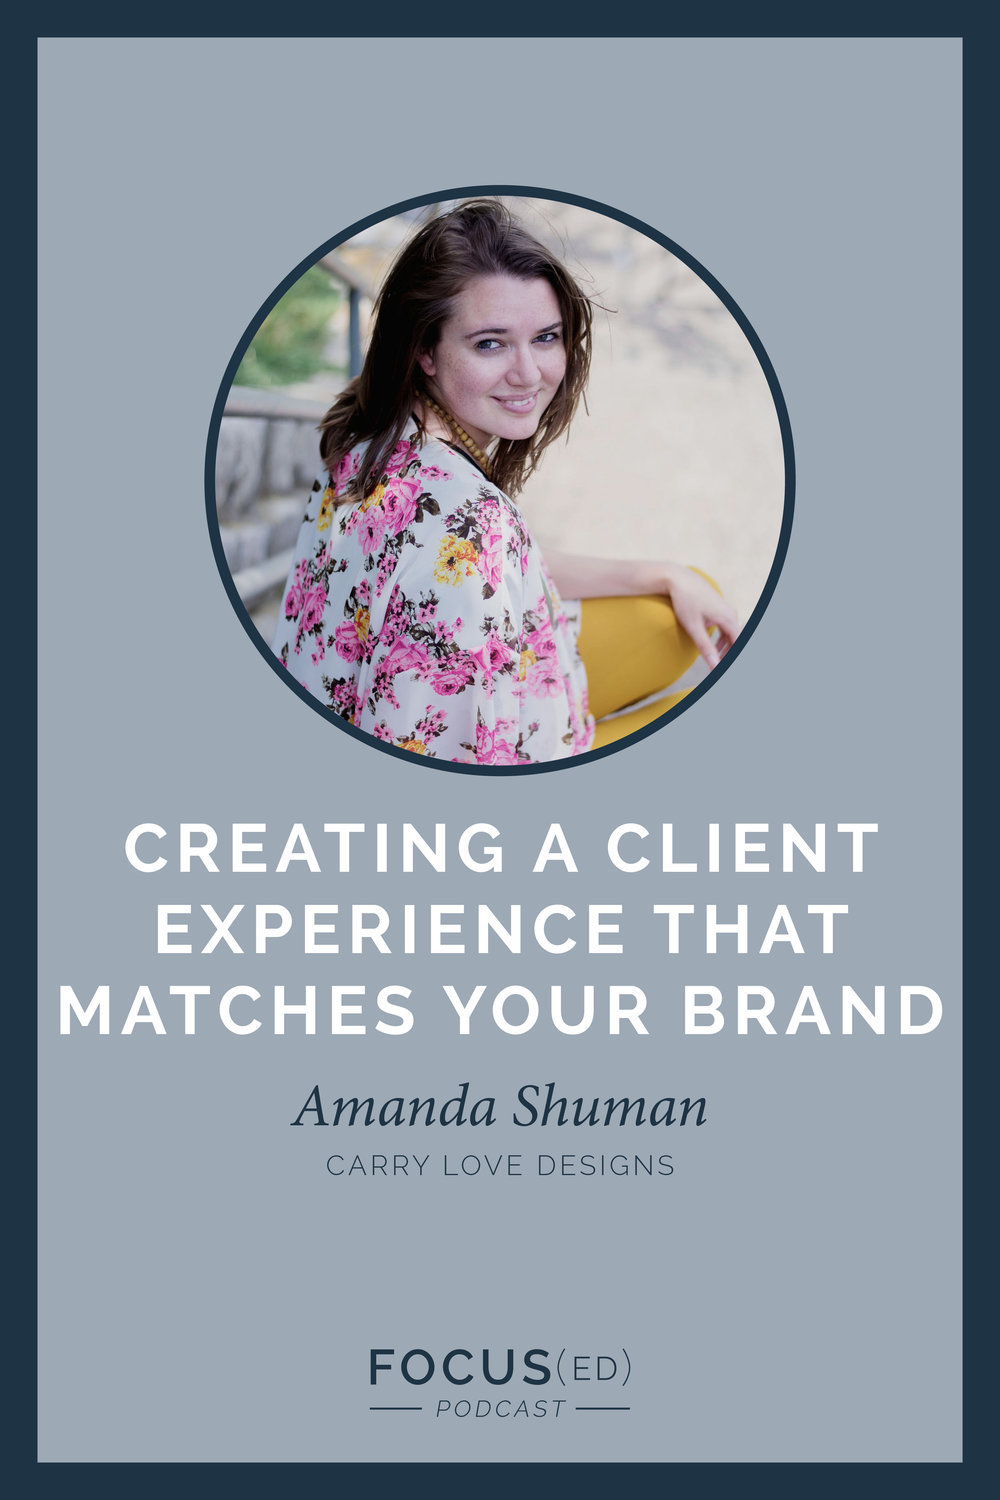 Your client experience is more than just a gift for your clients  |  Focus(ed) Podcast 060